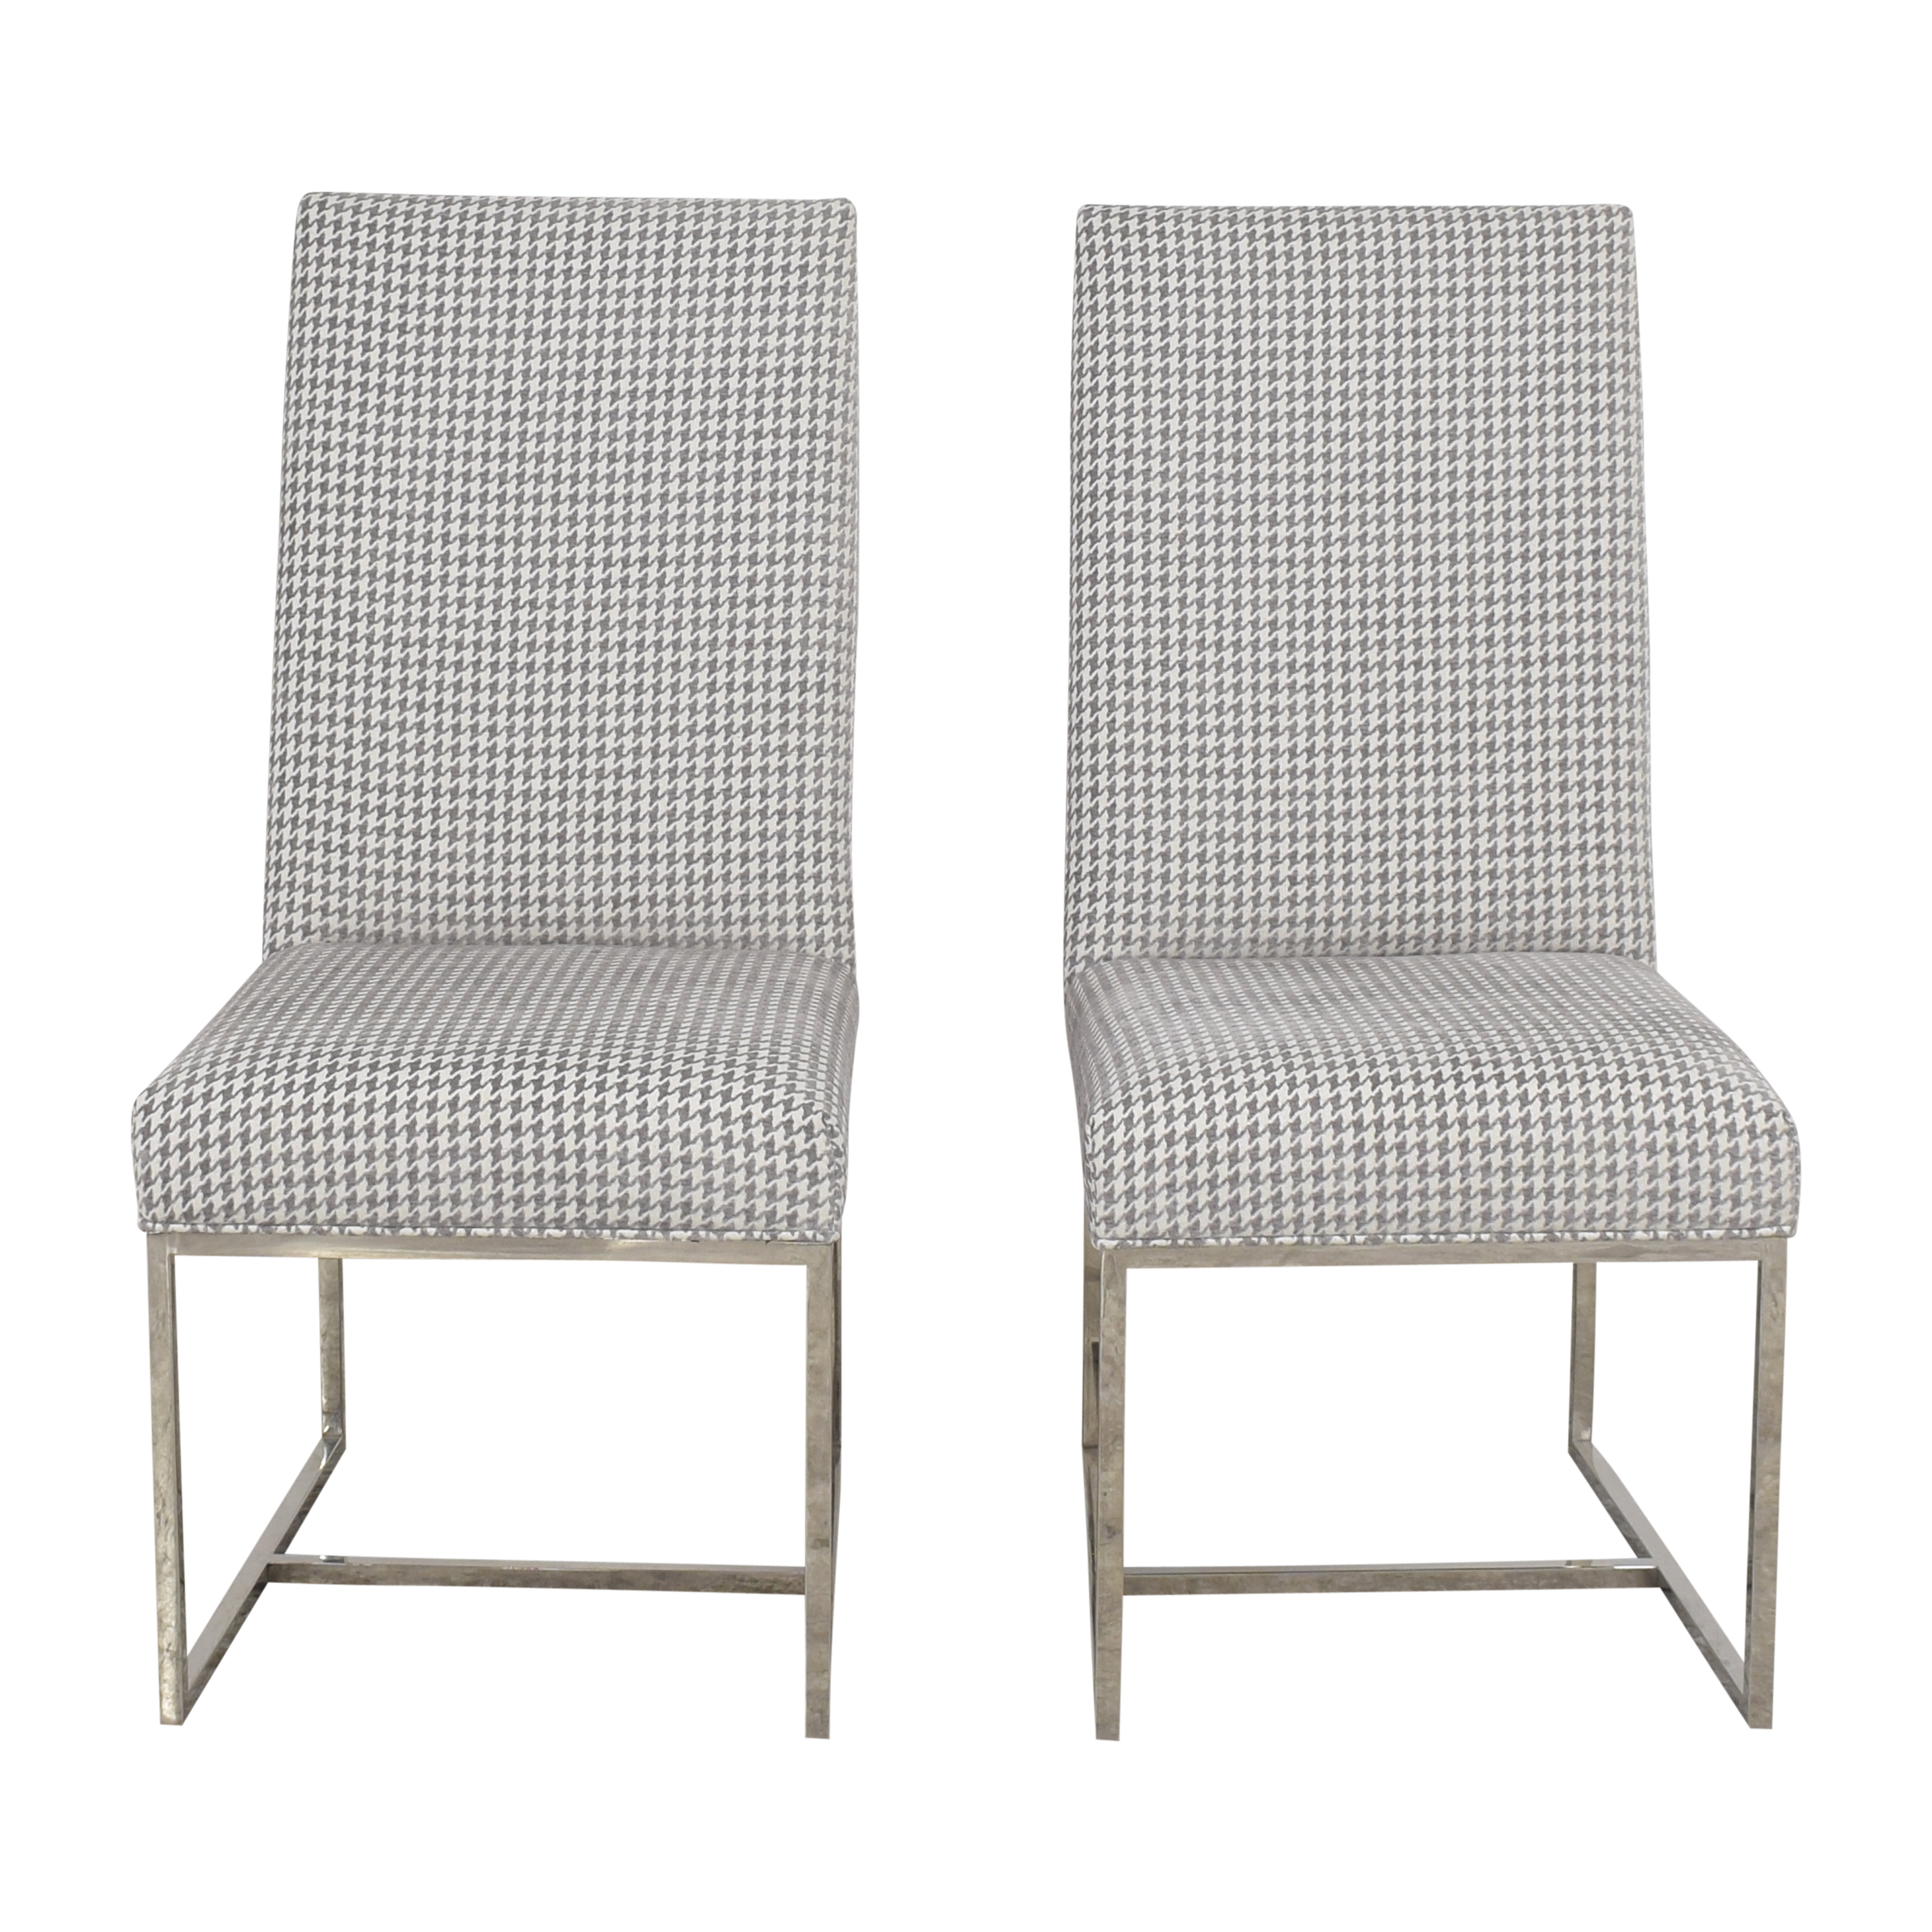 Mitchell Gold + Bob Williams Mitchell Gold + Bob Williams Gage Tall Dining Chairs used